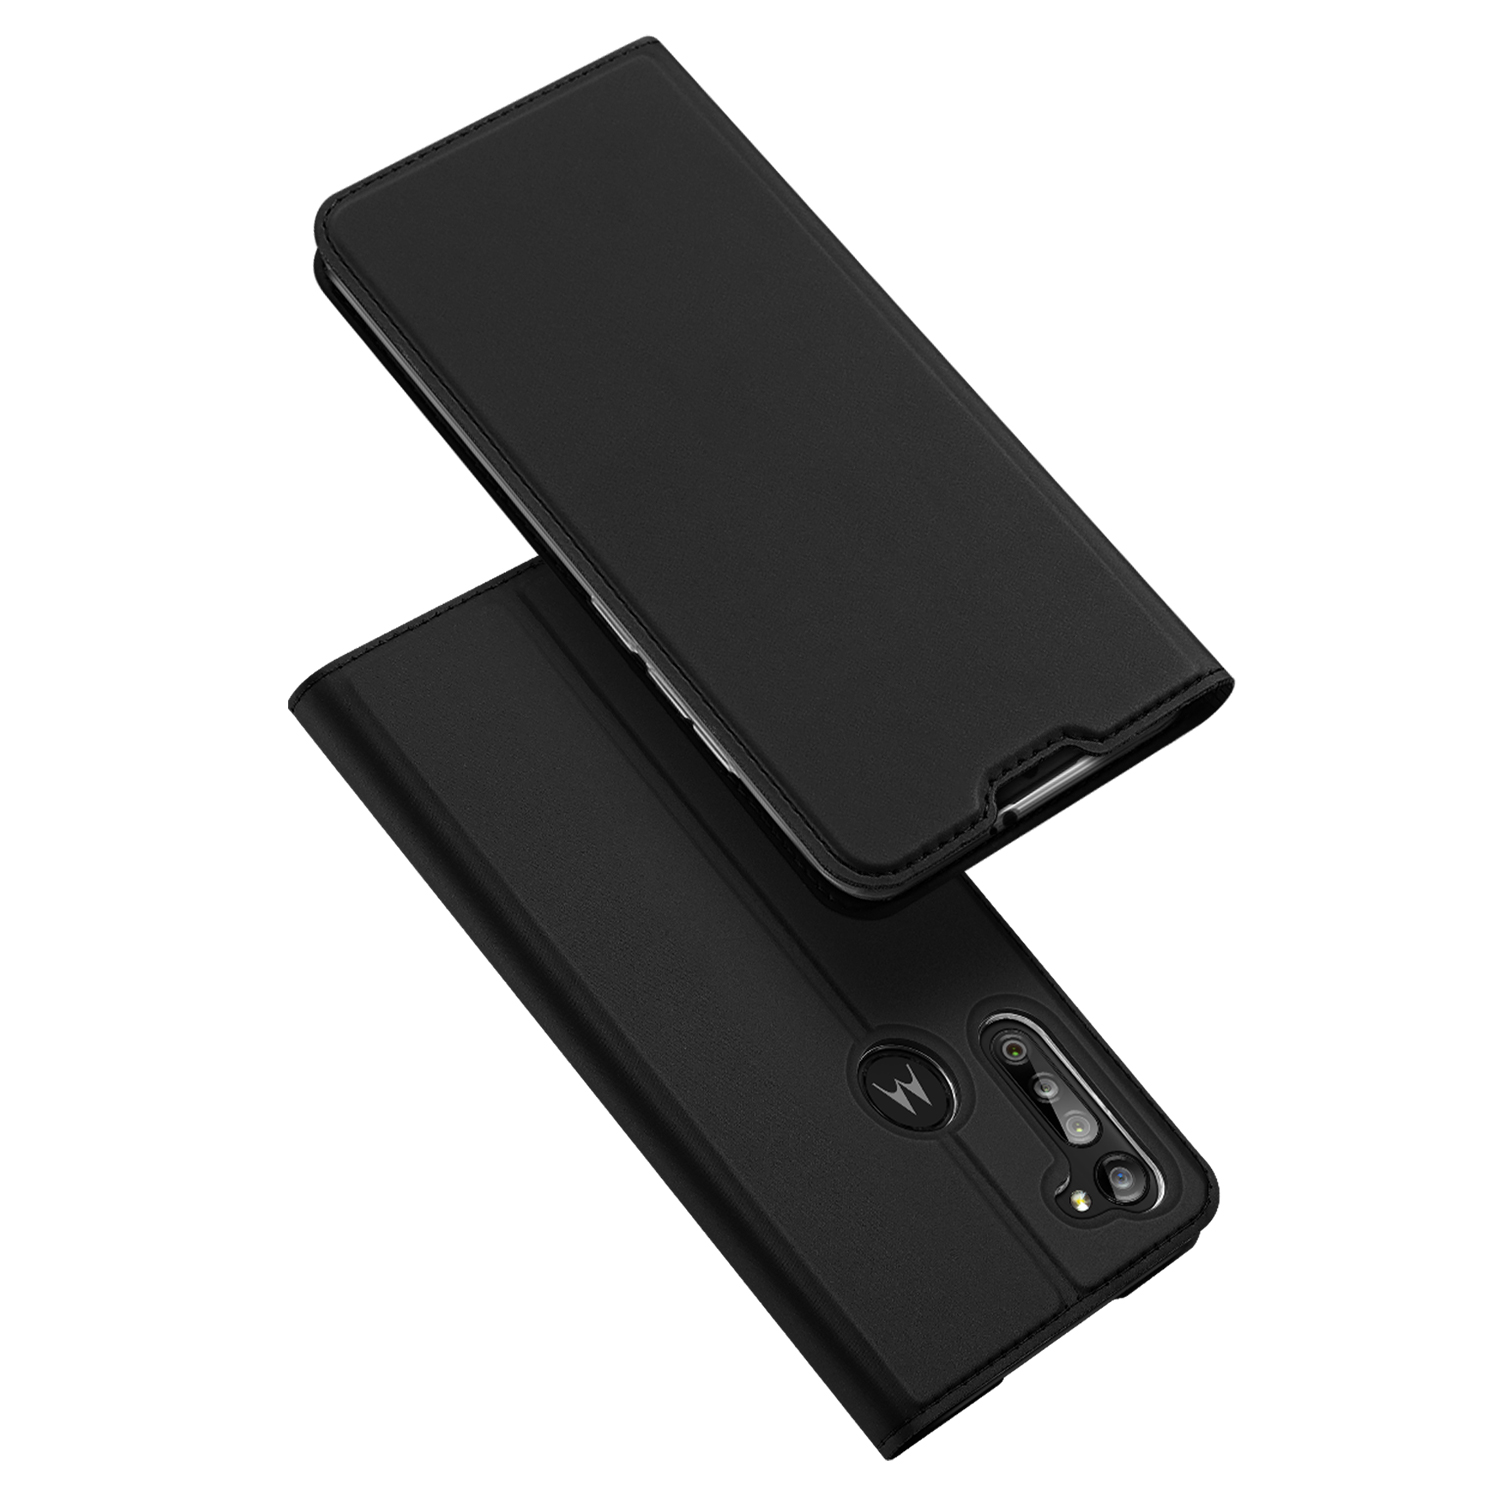 DUX DUCIS For Moto G8/G8 Power Leather Mobile Phone Cover Magnetic Protective Case Bracket with Cards Slot black_Moto G8 Power